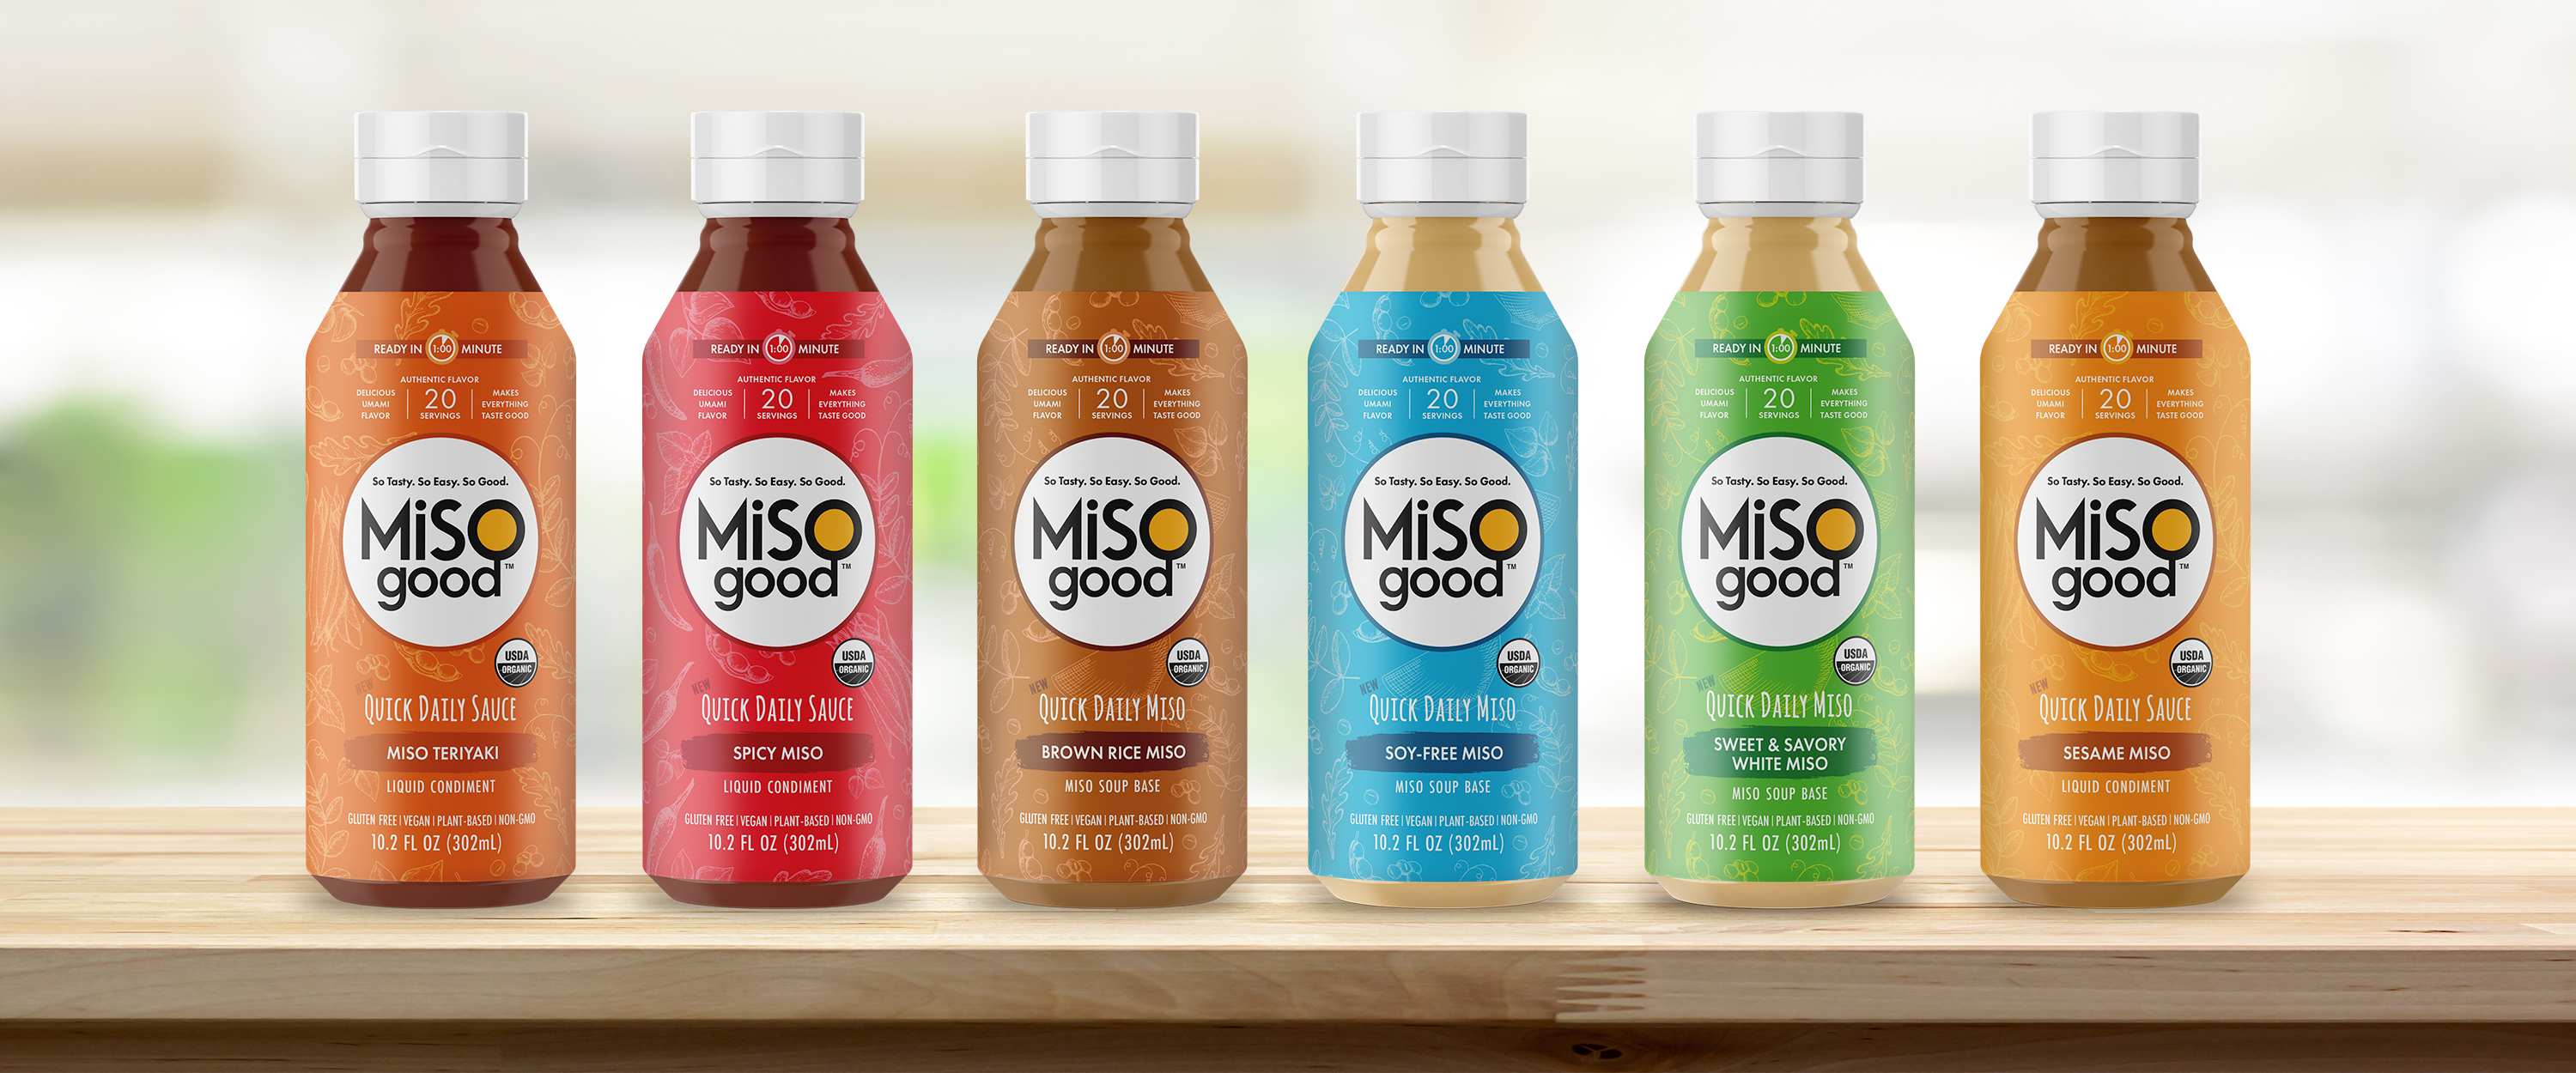 MiSOgood graphic design for food packaging showing a row of bottles in bright colors with white logo and hand drawn graphics on kitchen counter.